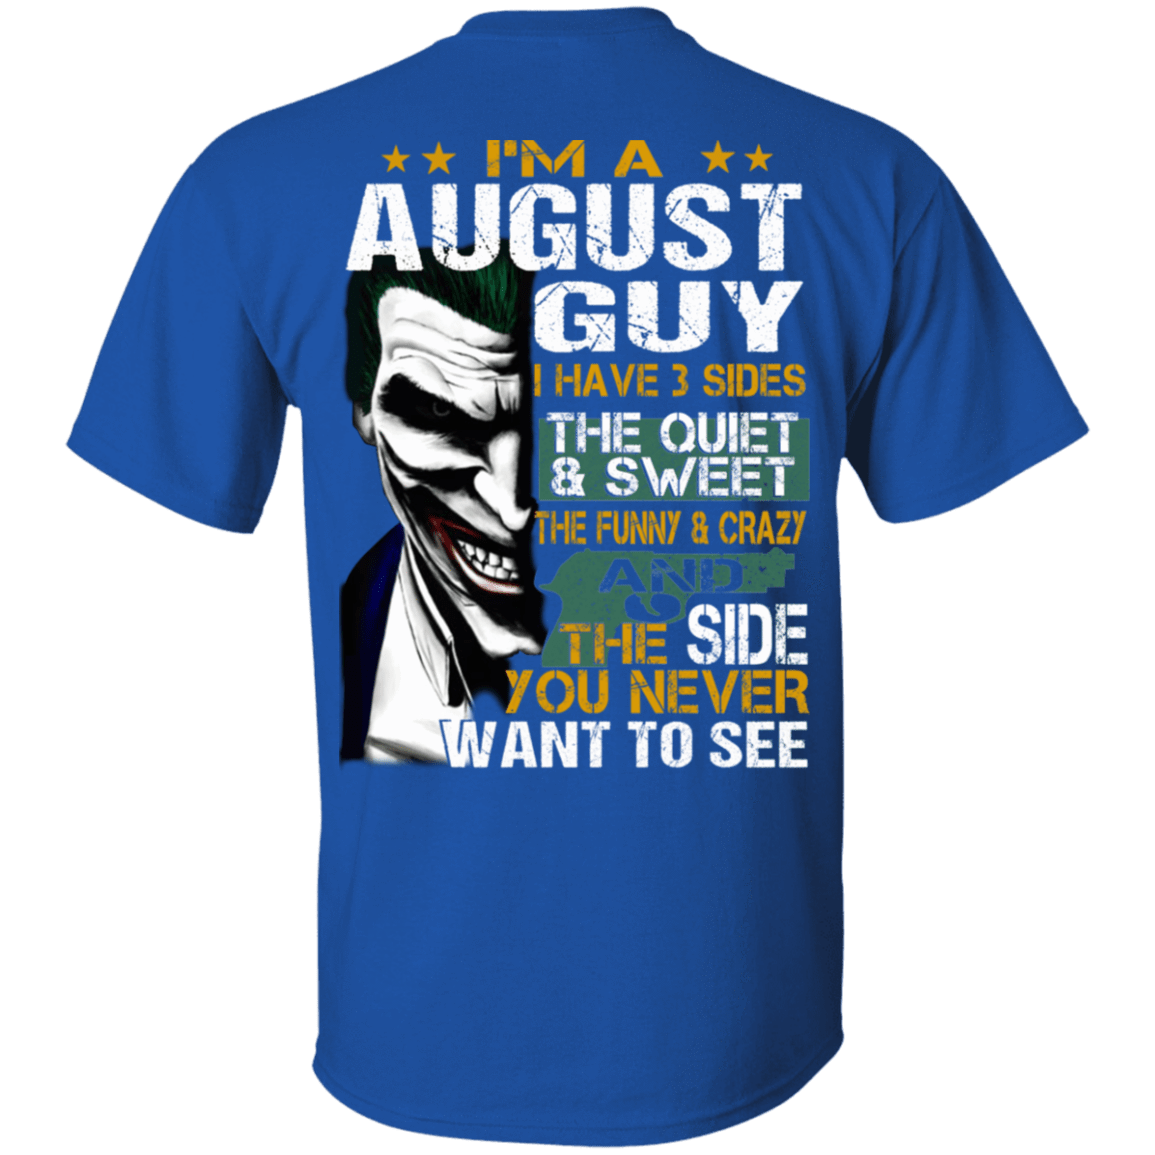 Joker August Guy Have 3 Sides The Quiet And Sweet T-Shirts, Hoodies 1049-9971-81647605-48286 - Tee Ript